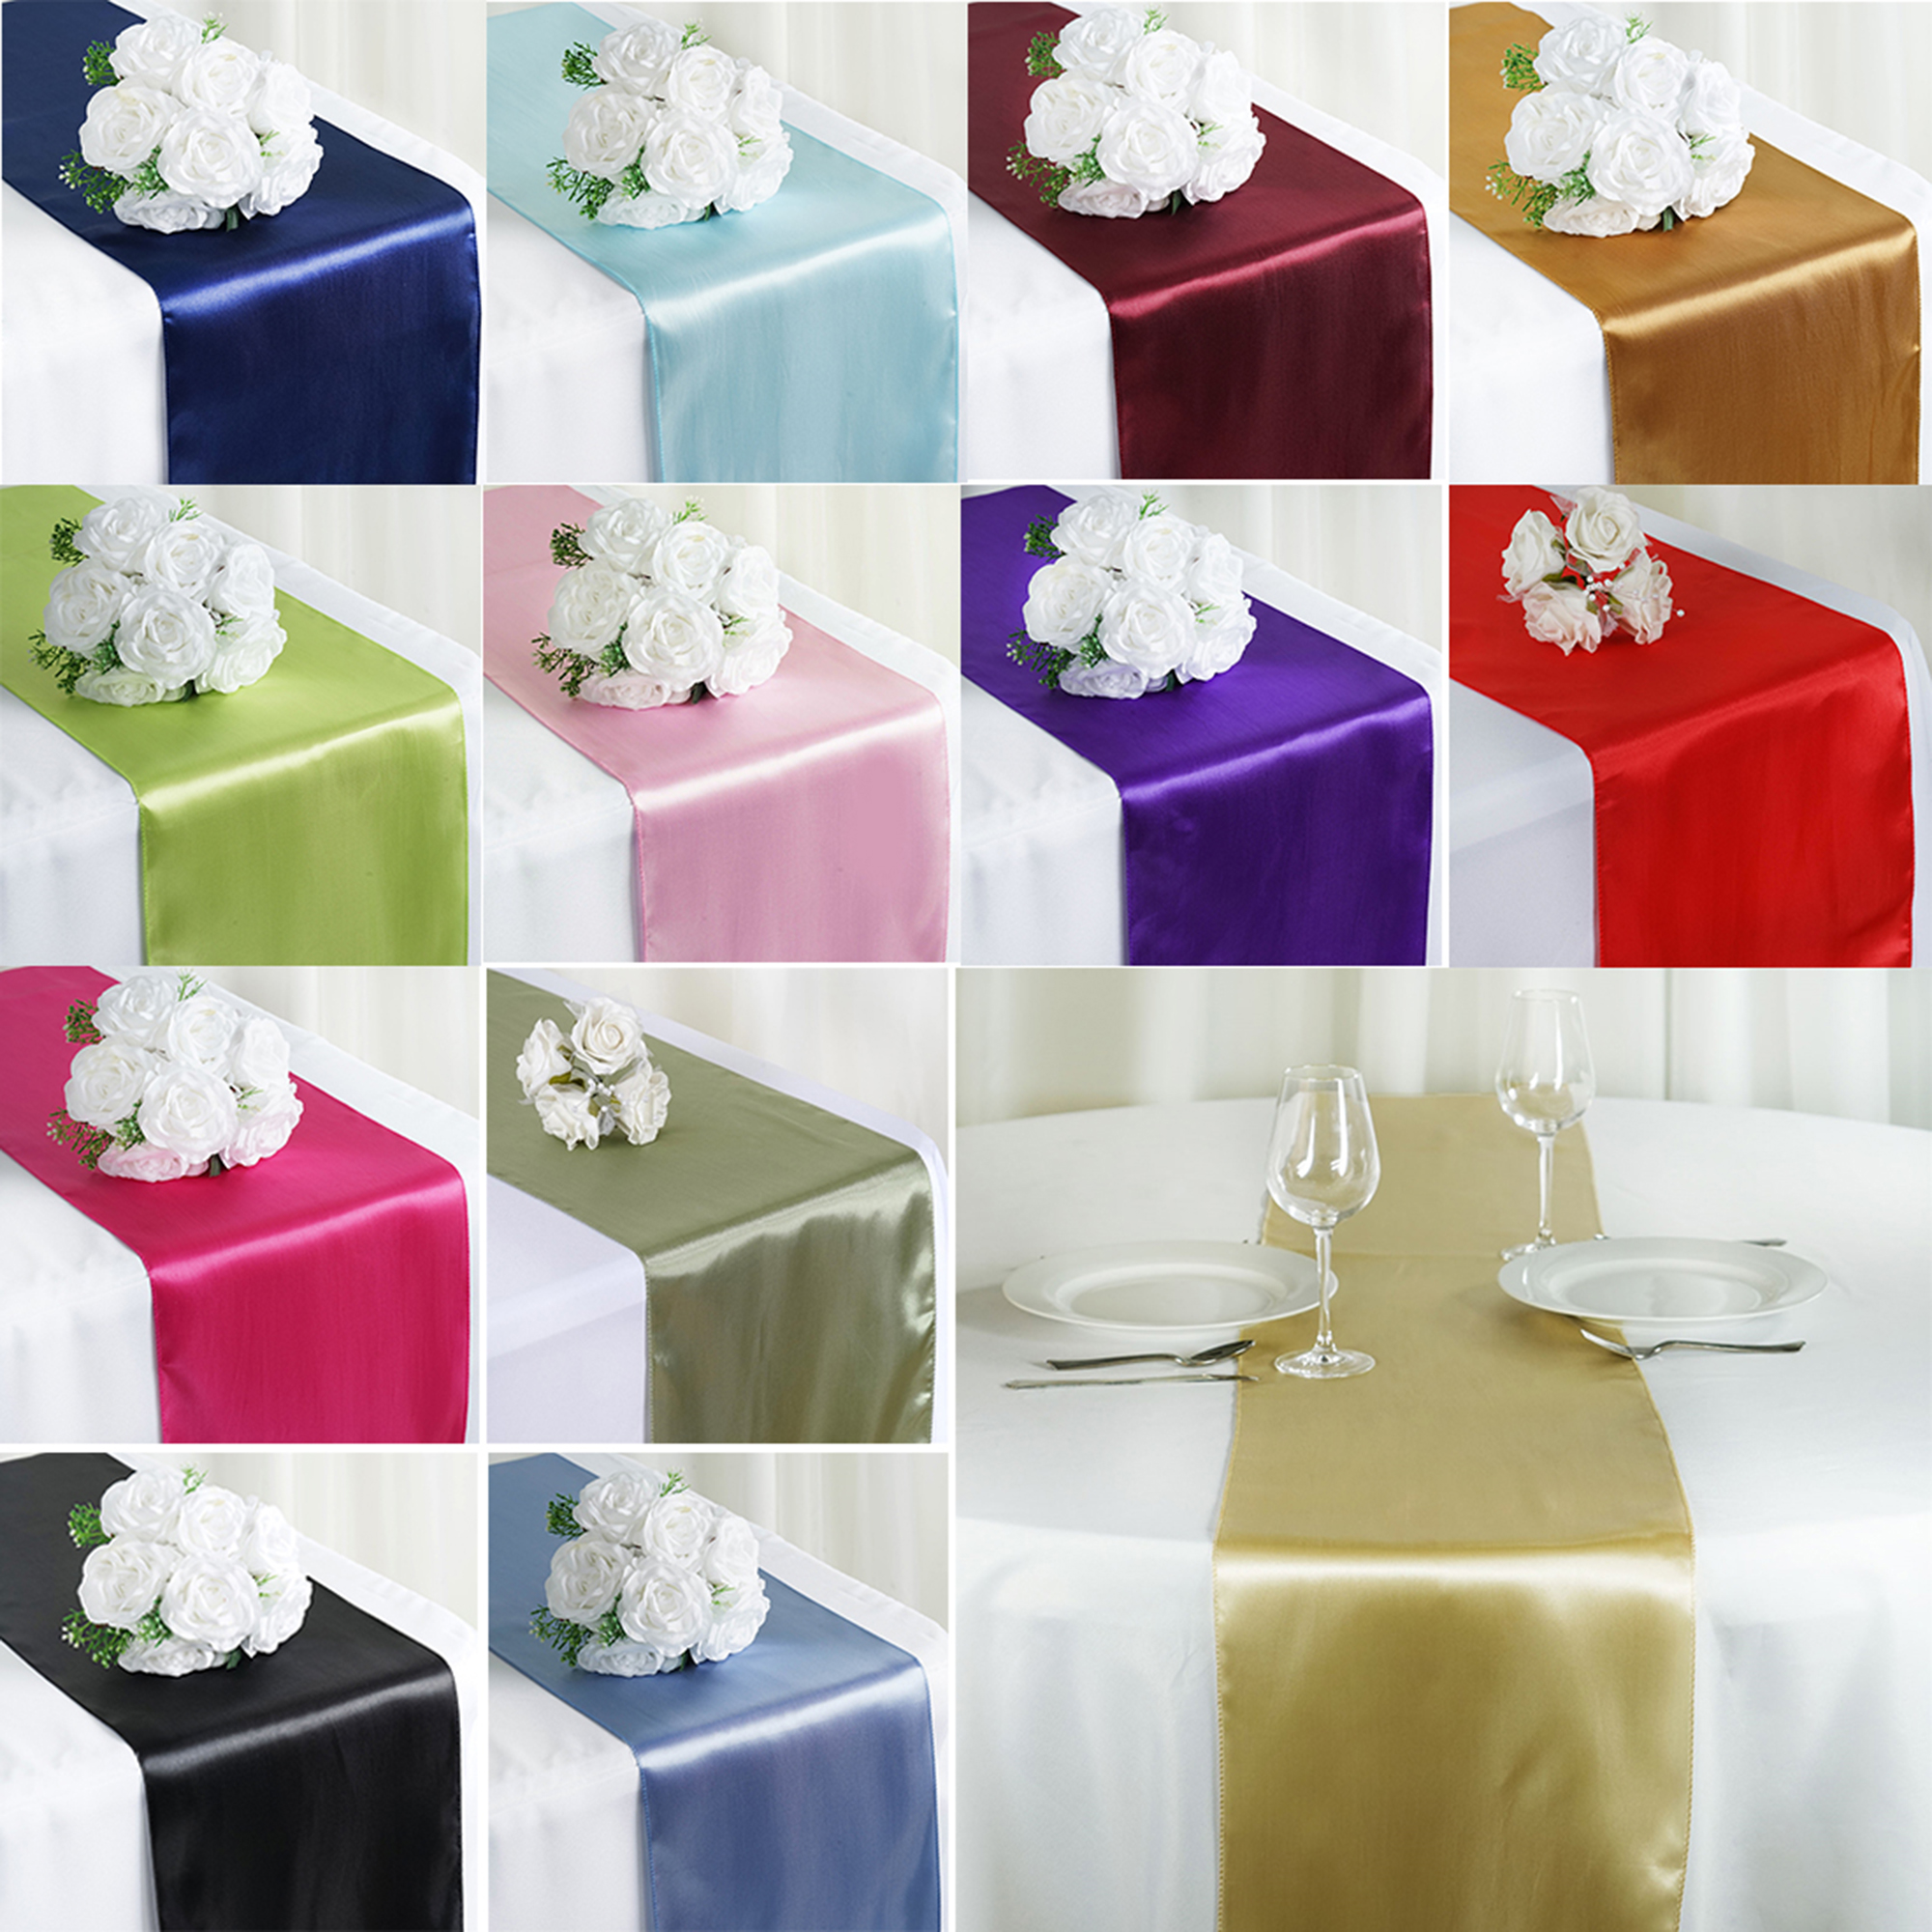 Evening Wedding Reception Decoration Ideas: CUH Satin Table Runner Wedding Party Reception Banquet